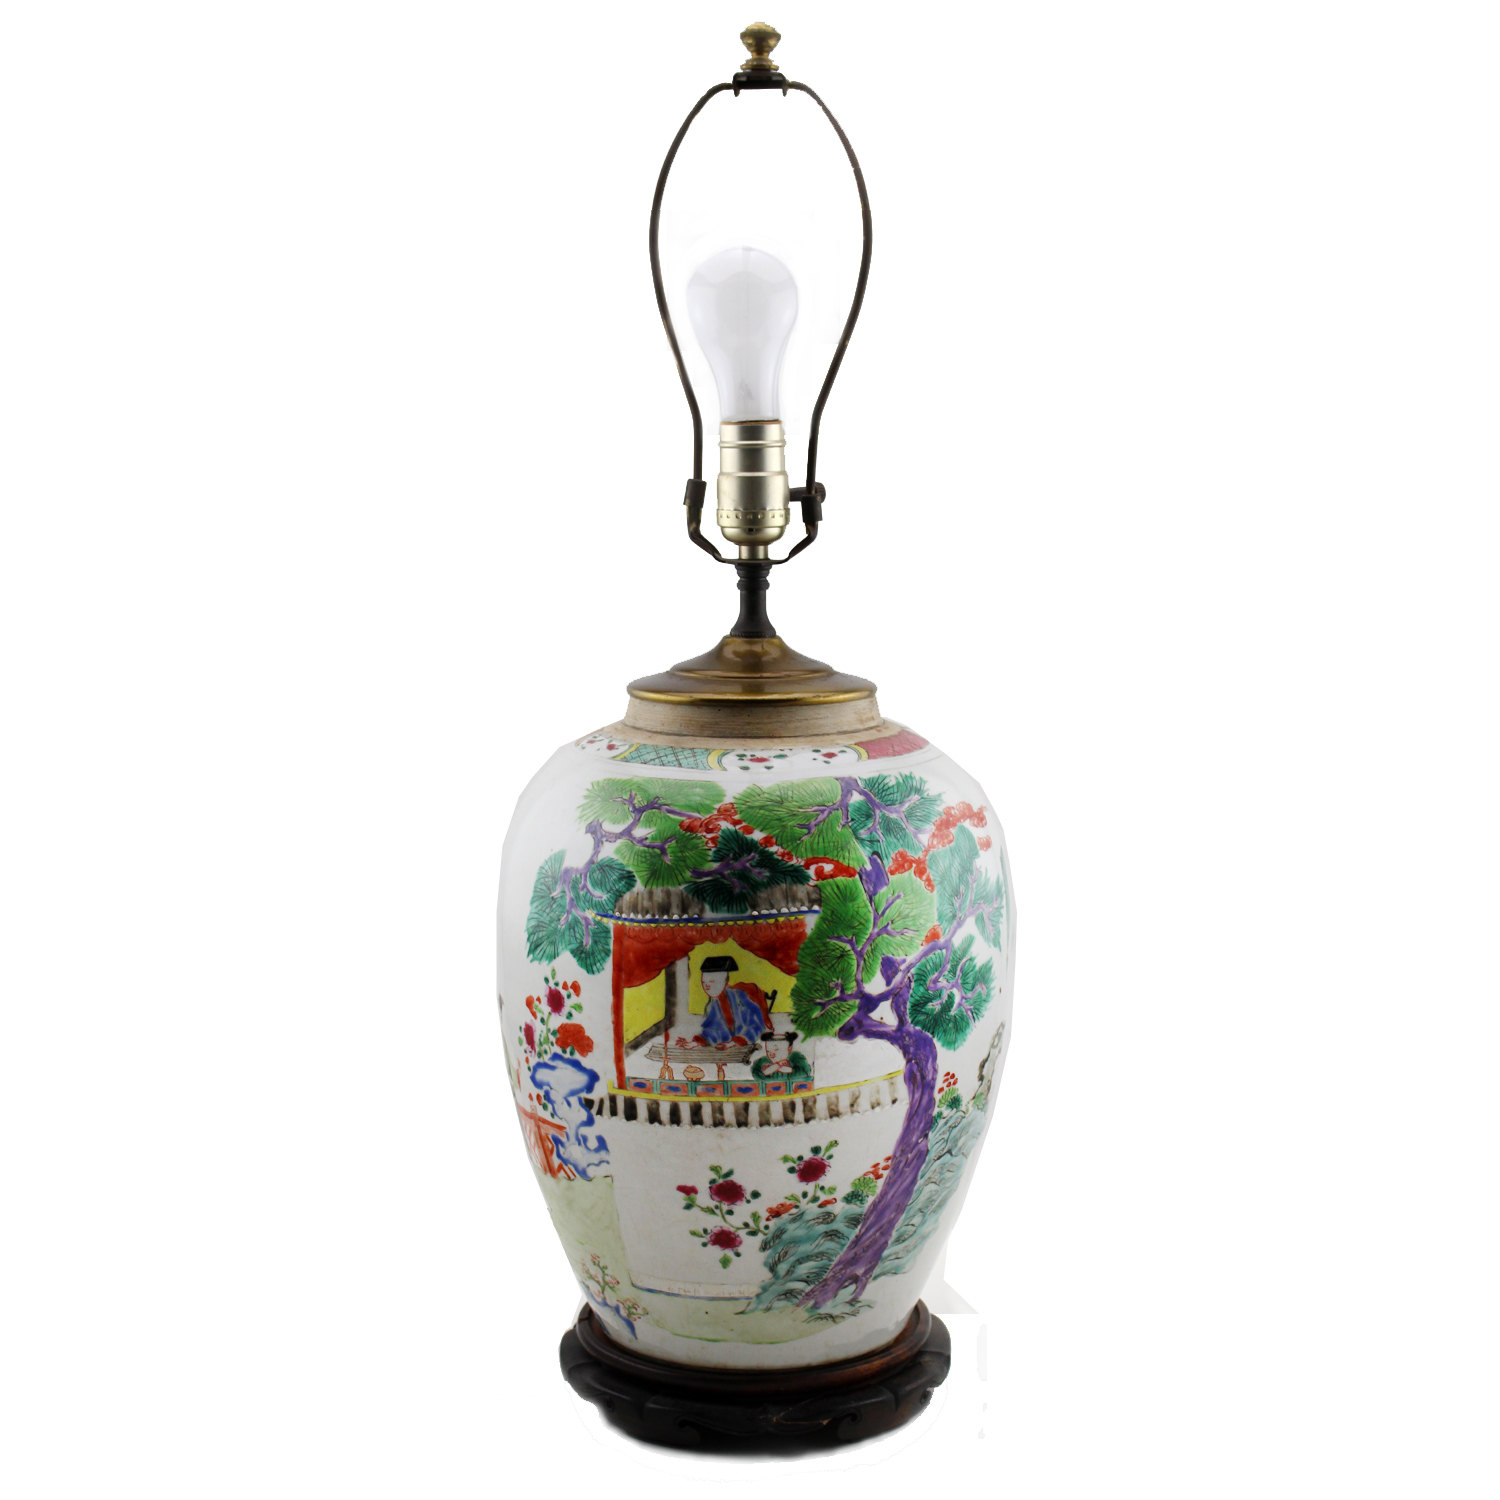 Chinese Famille Rose Porcelain Vase Converted Lamp, Circa 1900